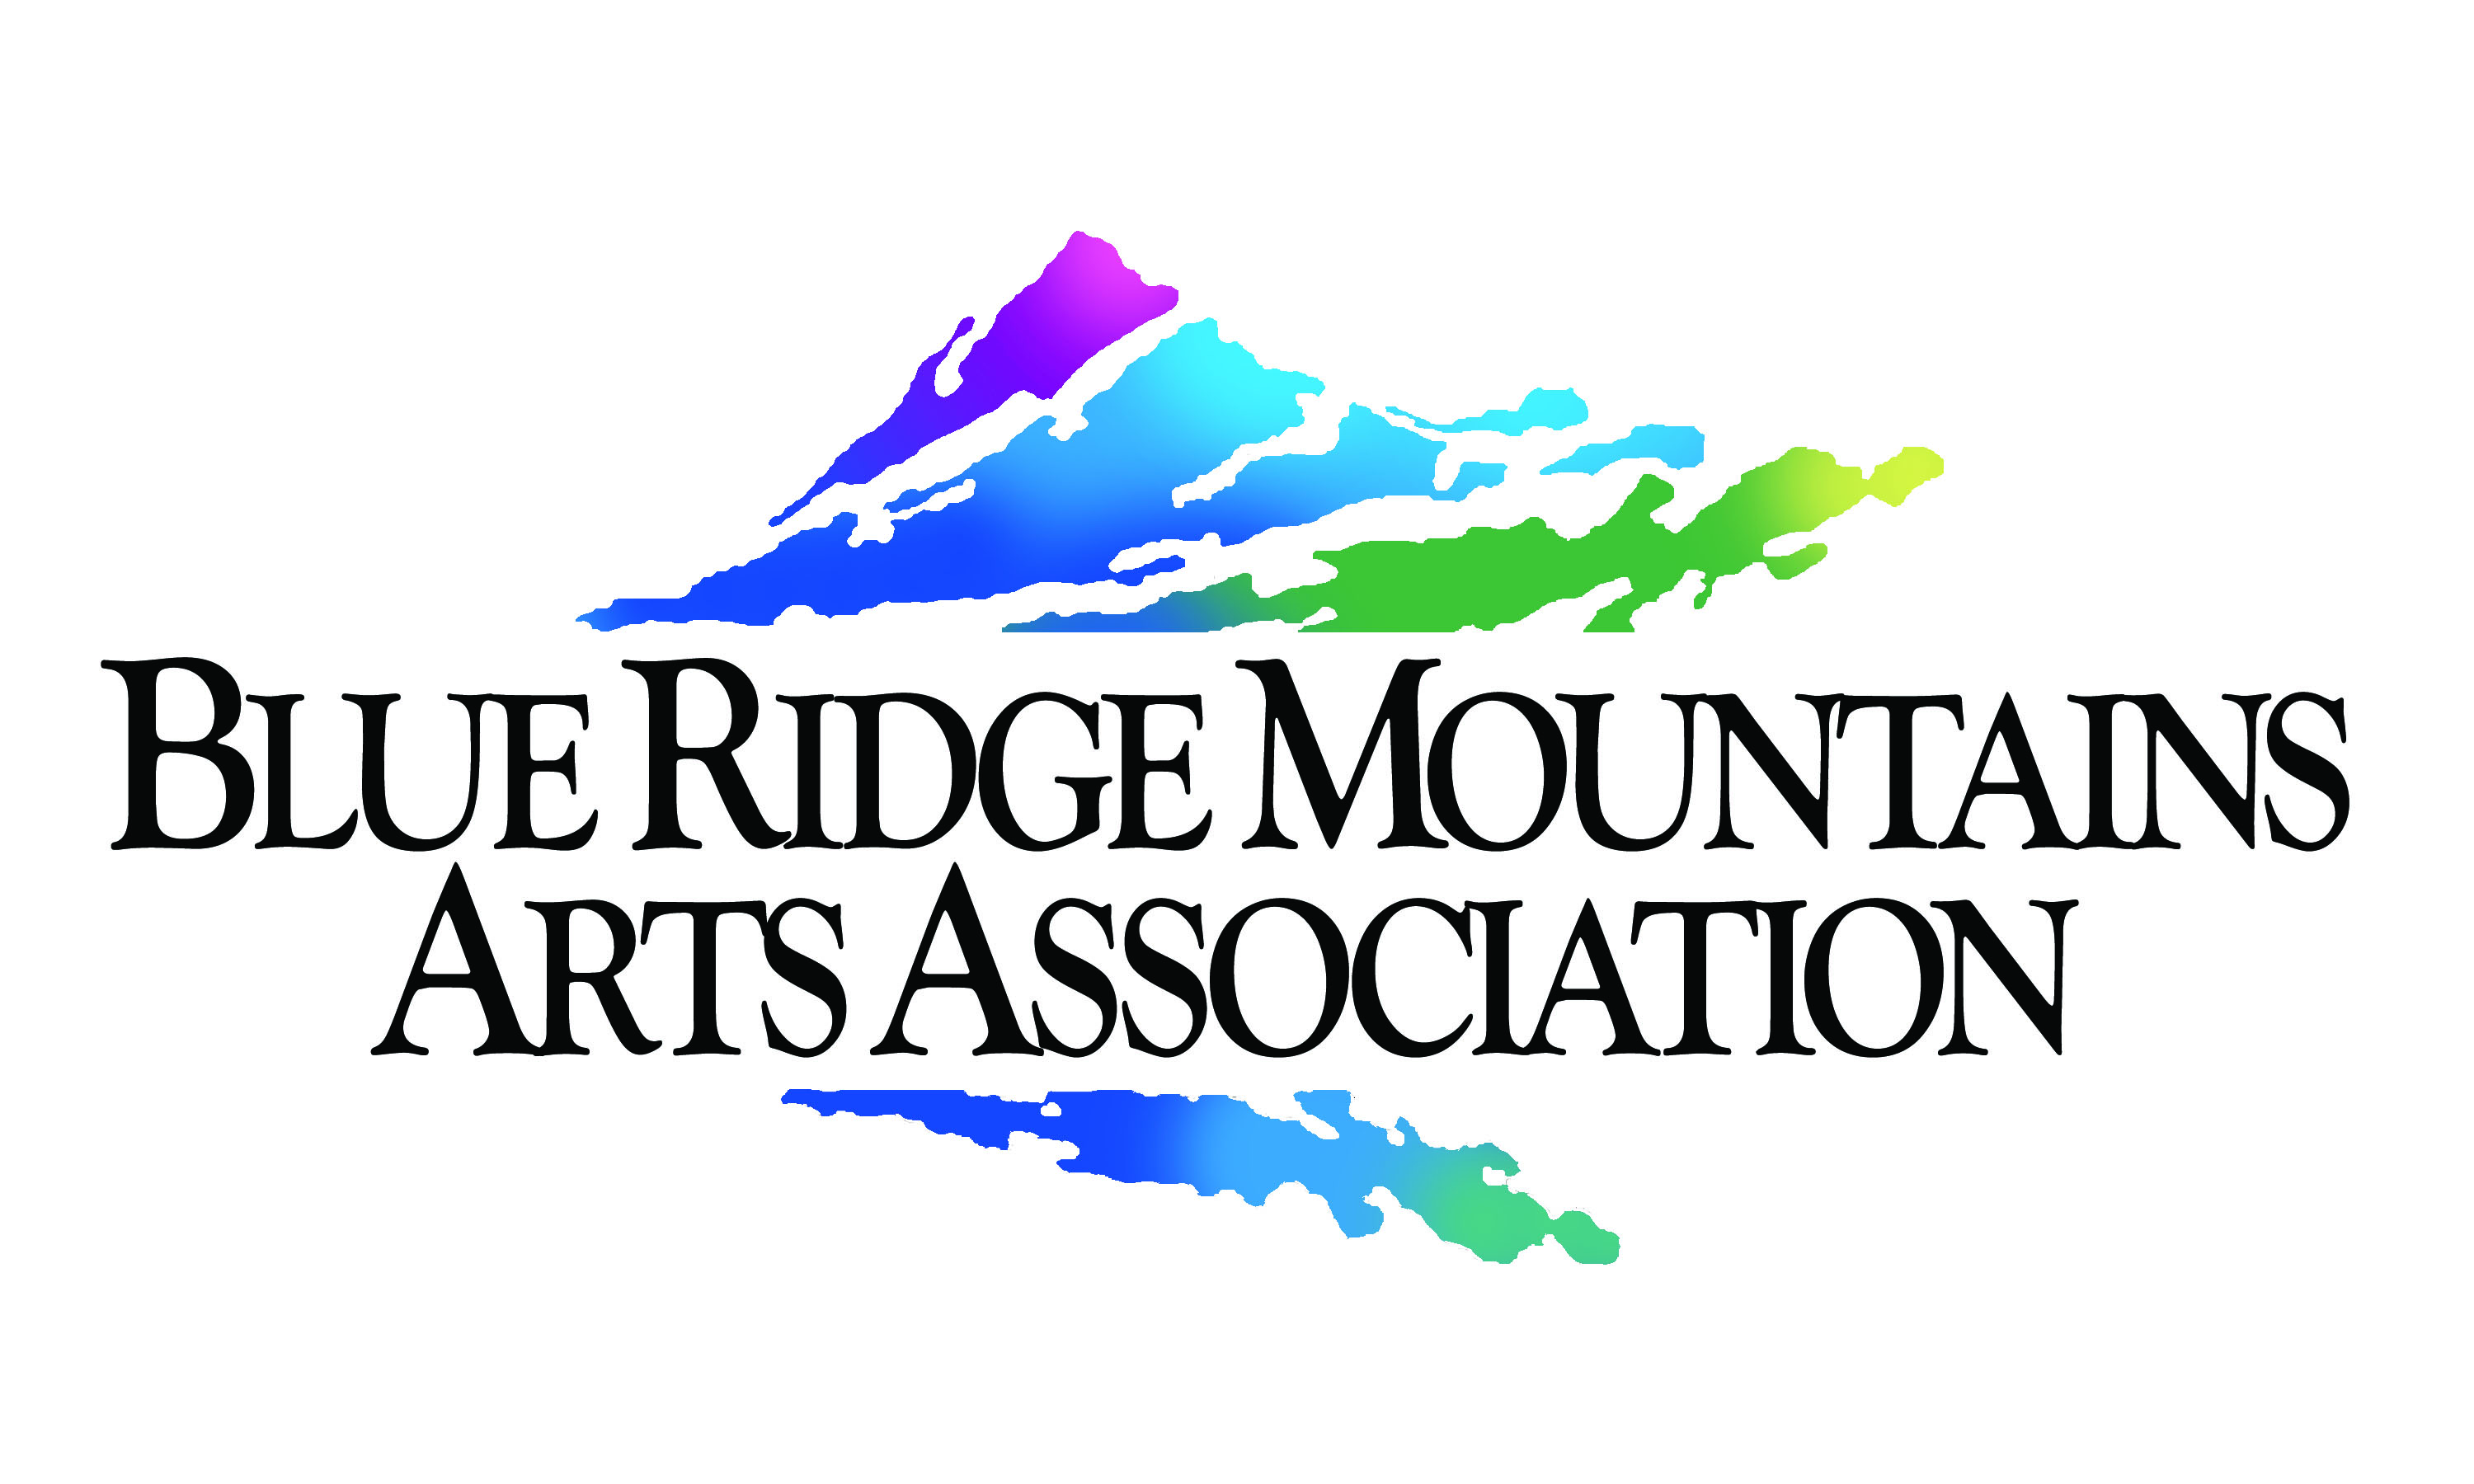 Blue Ridge Mountains Arts Association (BRMAA) 2016 National Juried Photography Show - logo